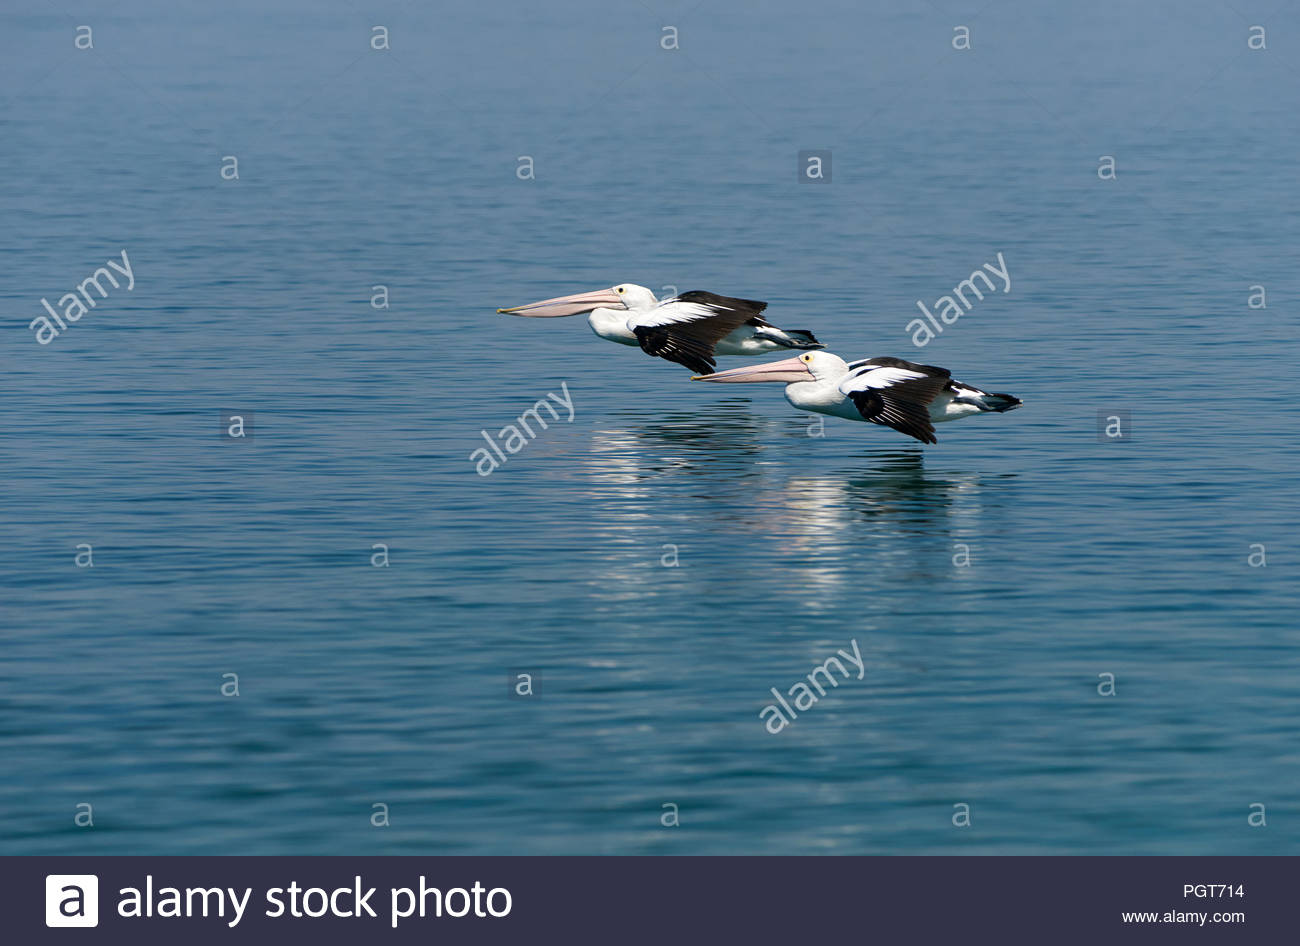 Two Pelecanus conspicillatus - Australian pelicans - flying low over the smooth waters of the Clarence River, off Goodwood Island, NSW, Australia. - Stock Image